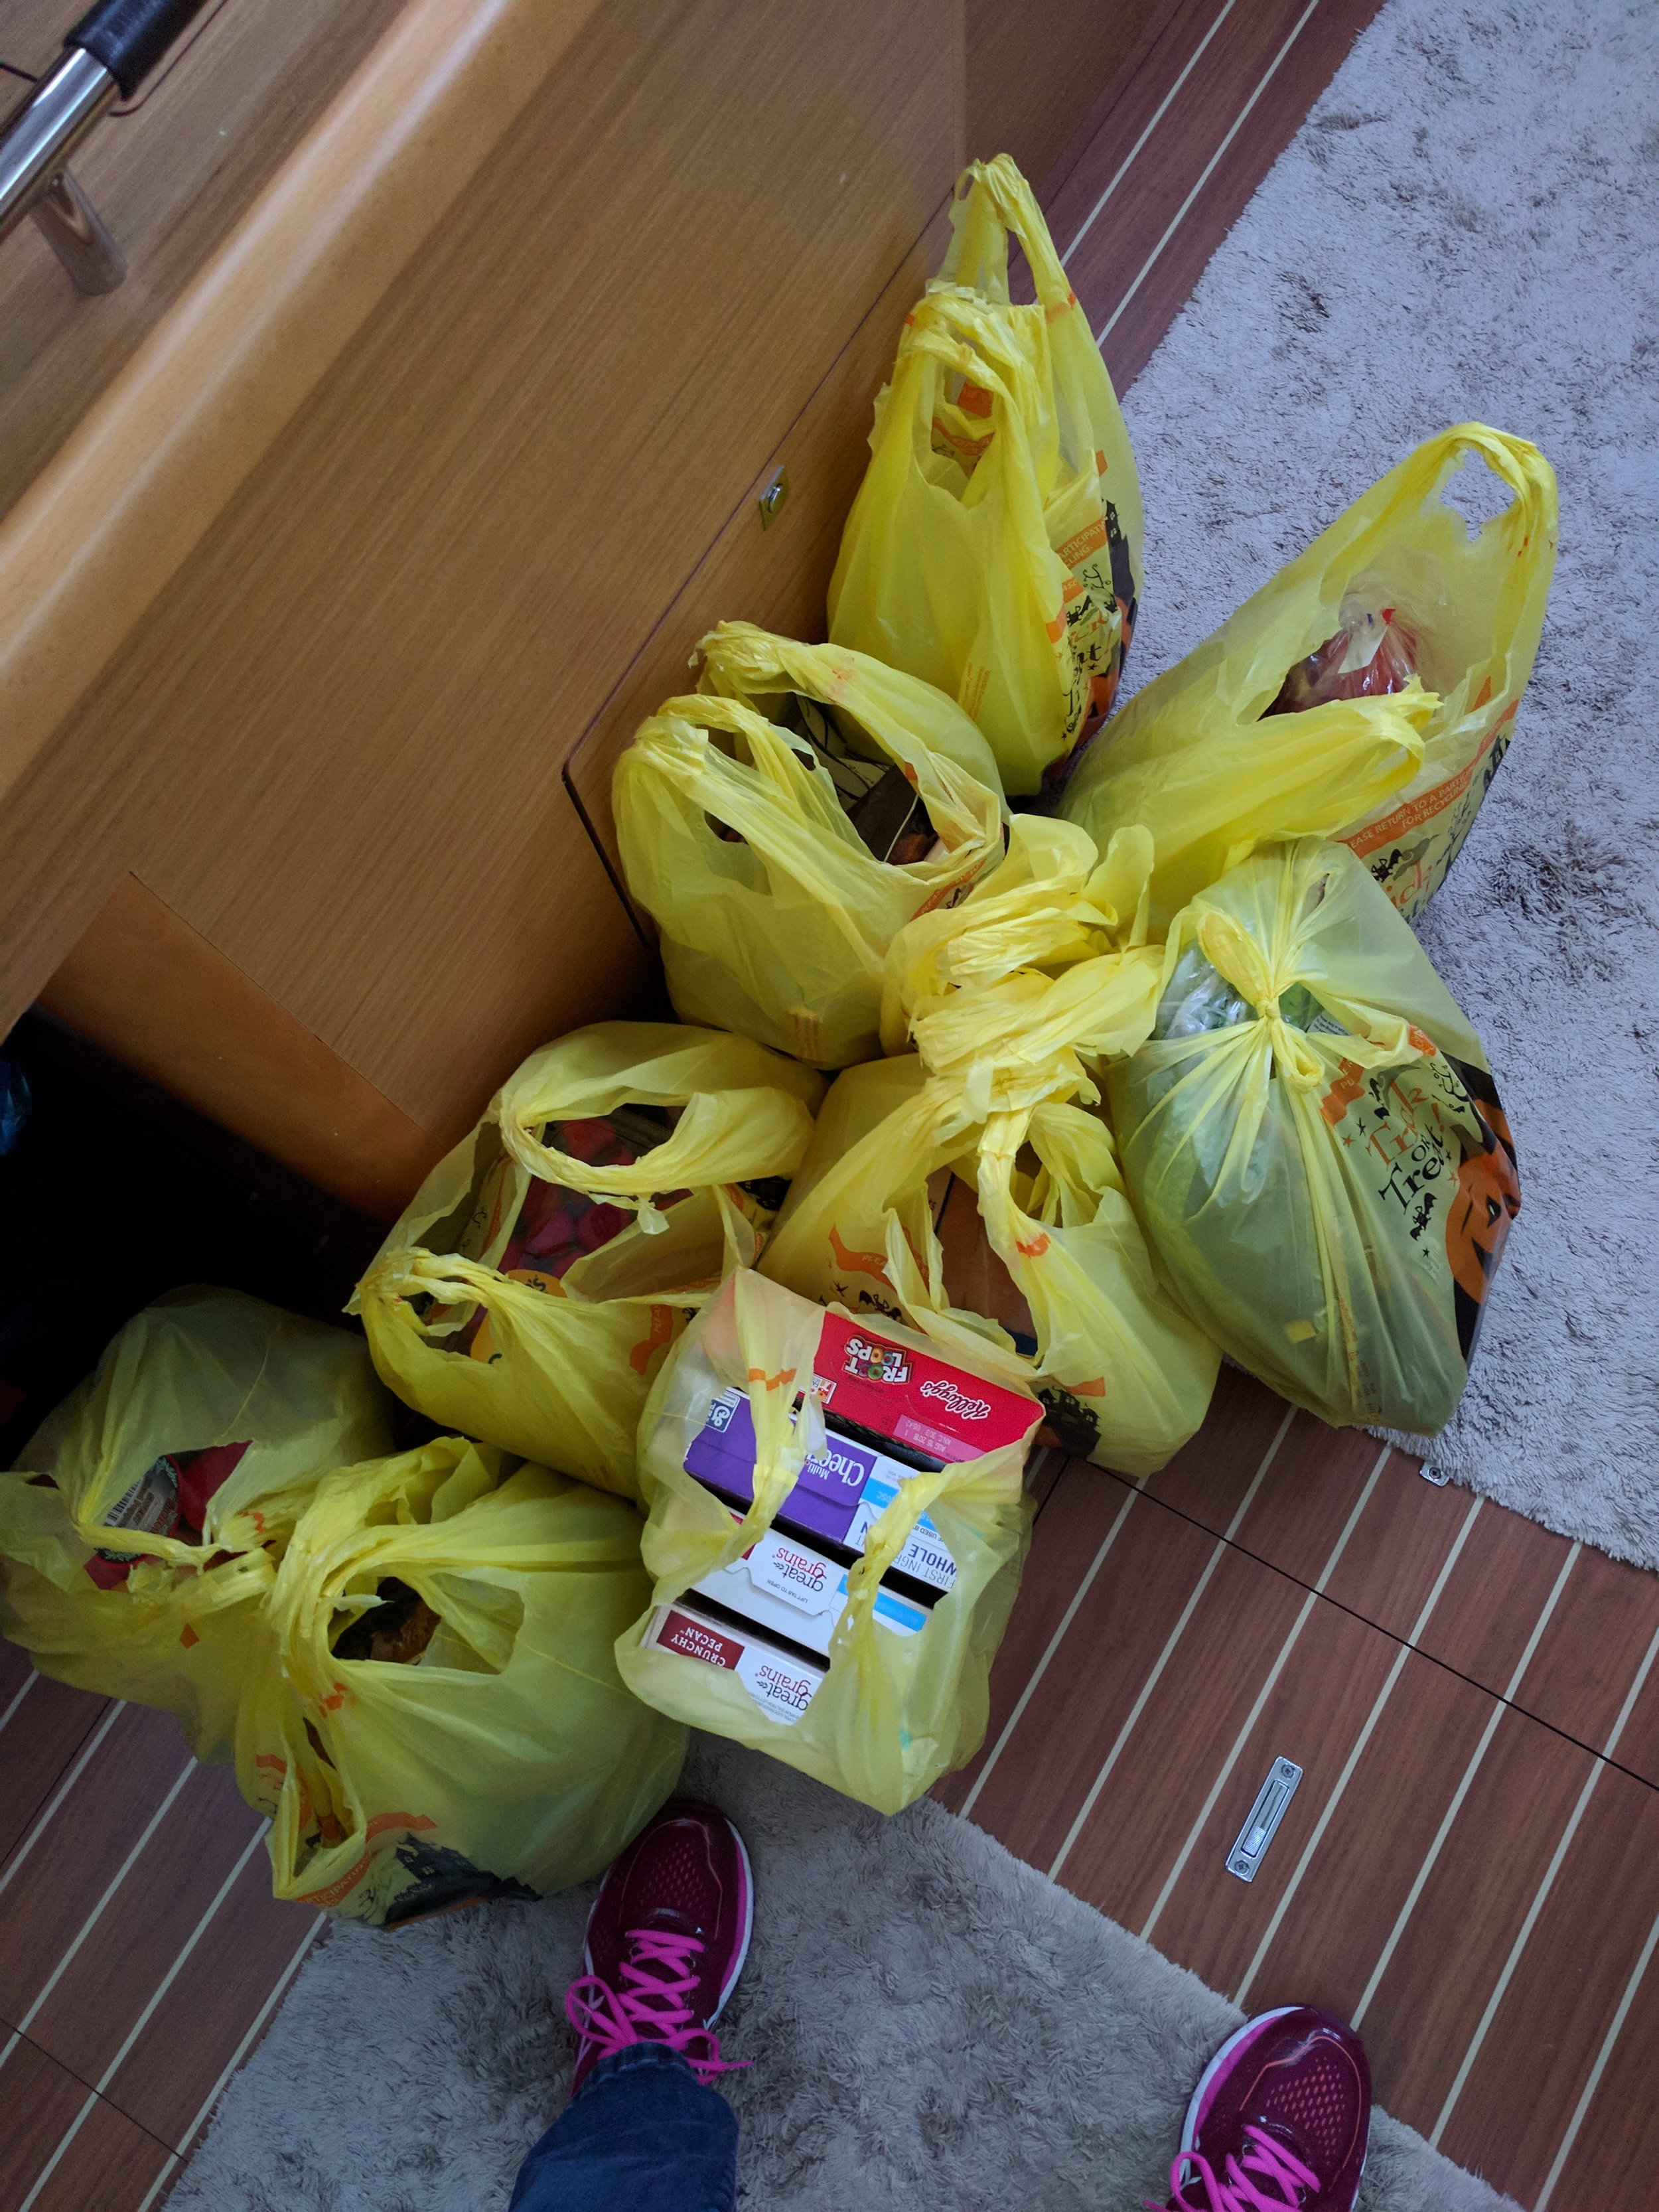 Our groceries.